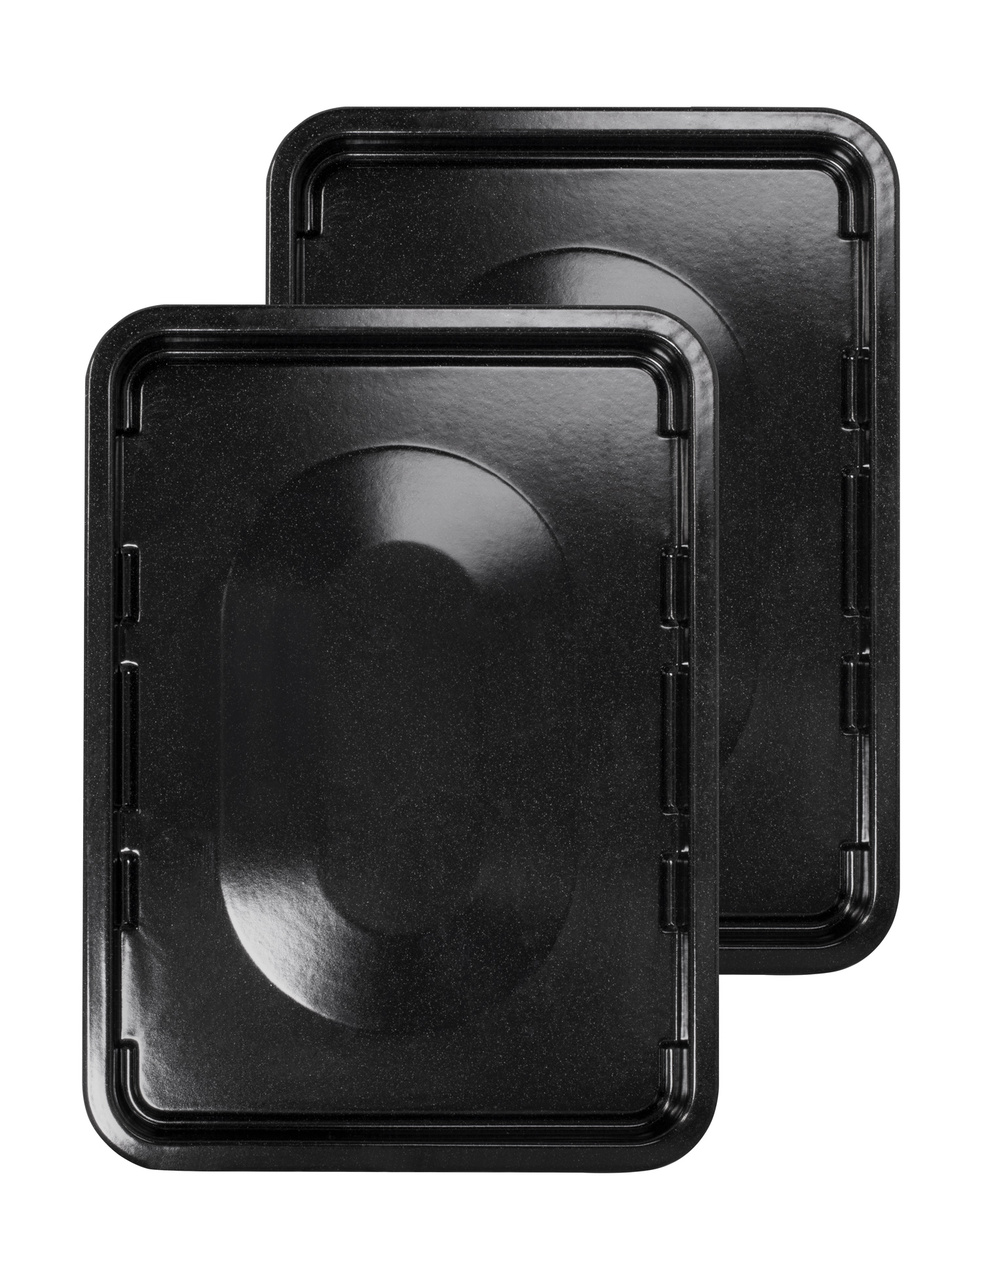 Two Baking / Steam Trays for the SuperSteam IoT Oven (SSC2489DS) - Sharp's Superheated Steam Oven